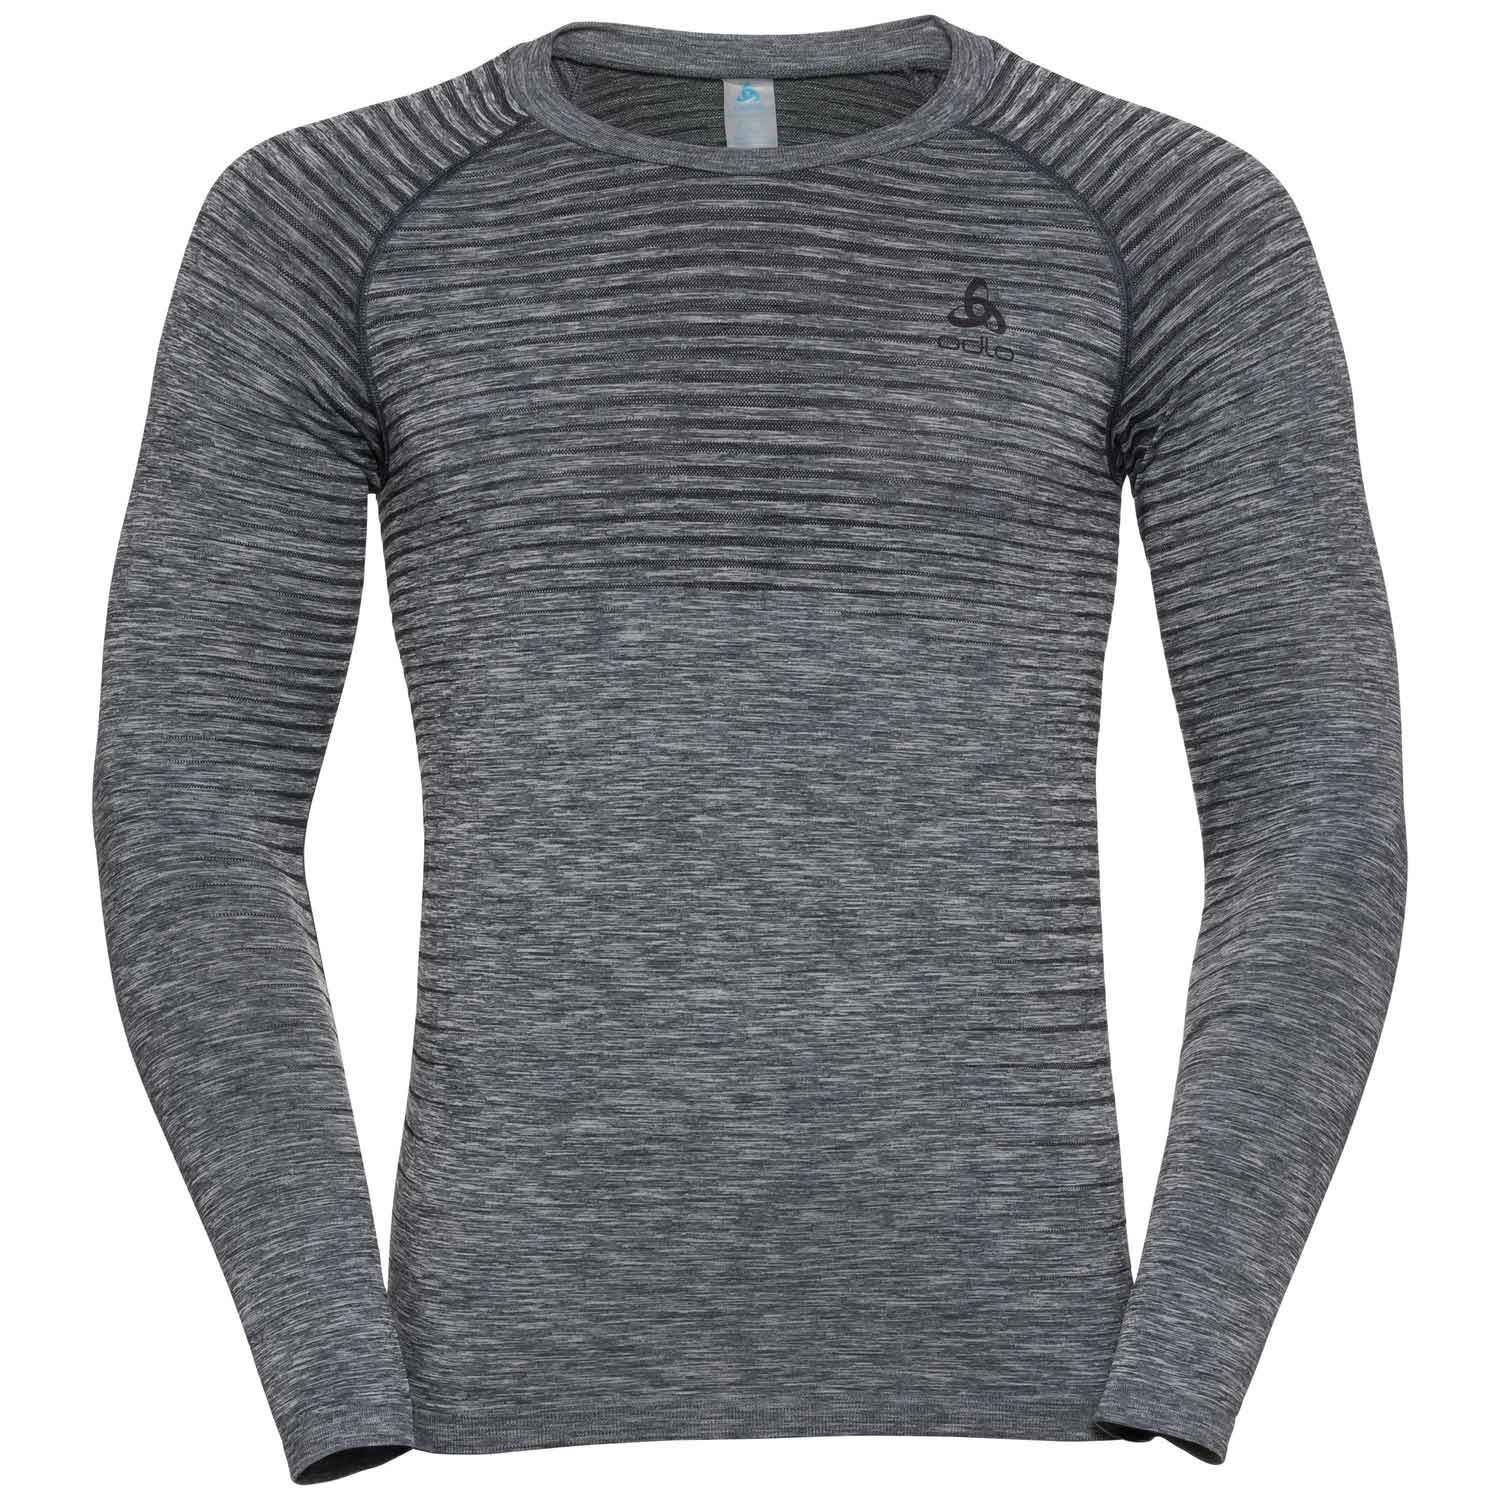 Odlo Performance Light Suw Crew L/S, camiseta térmica clásica